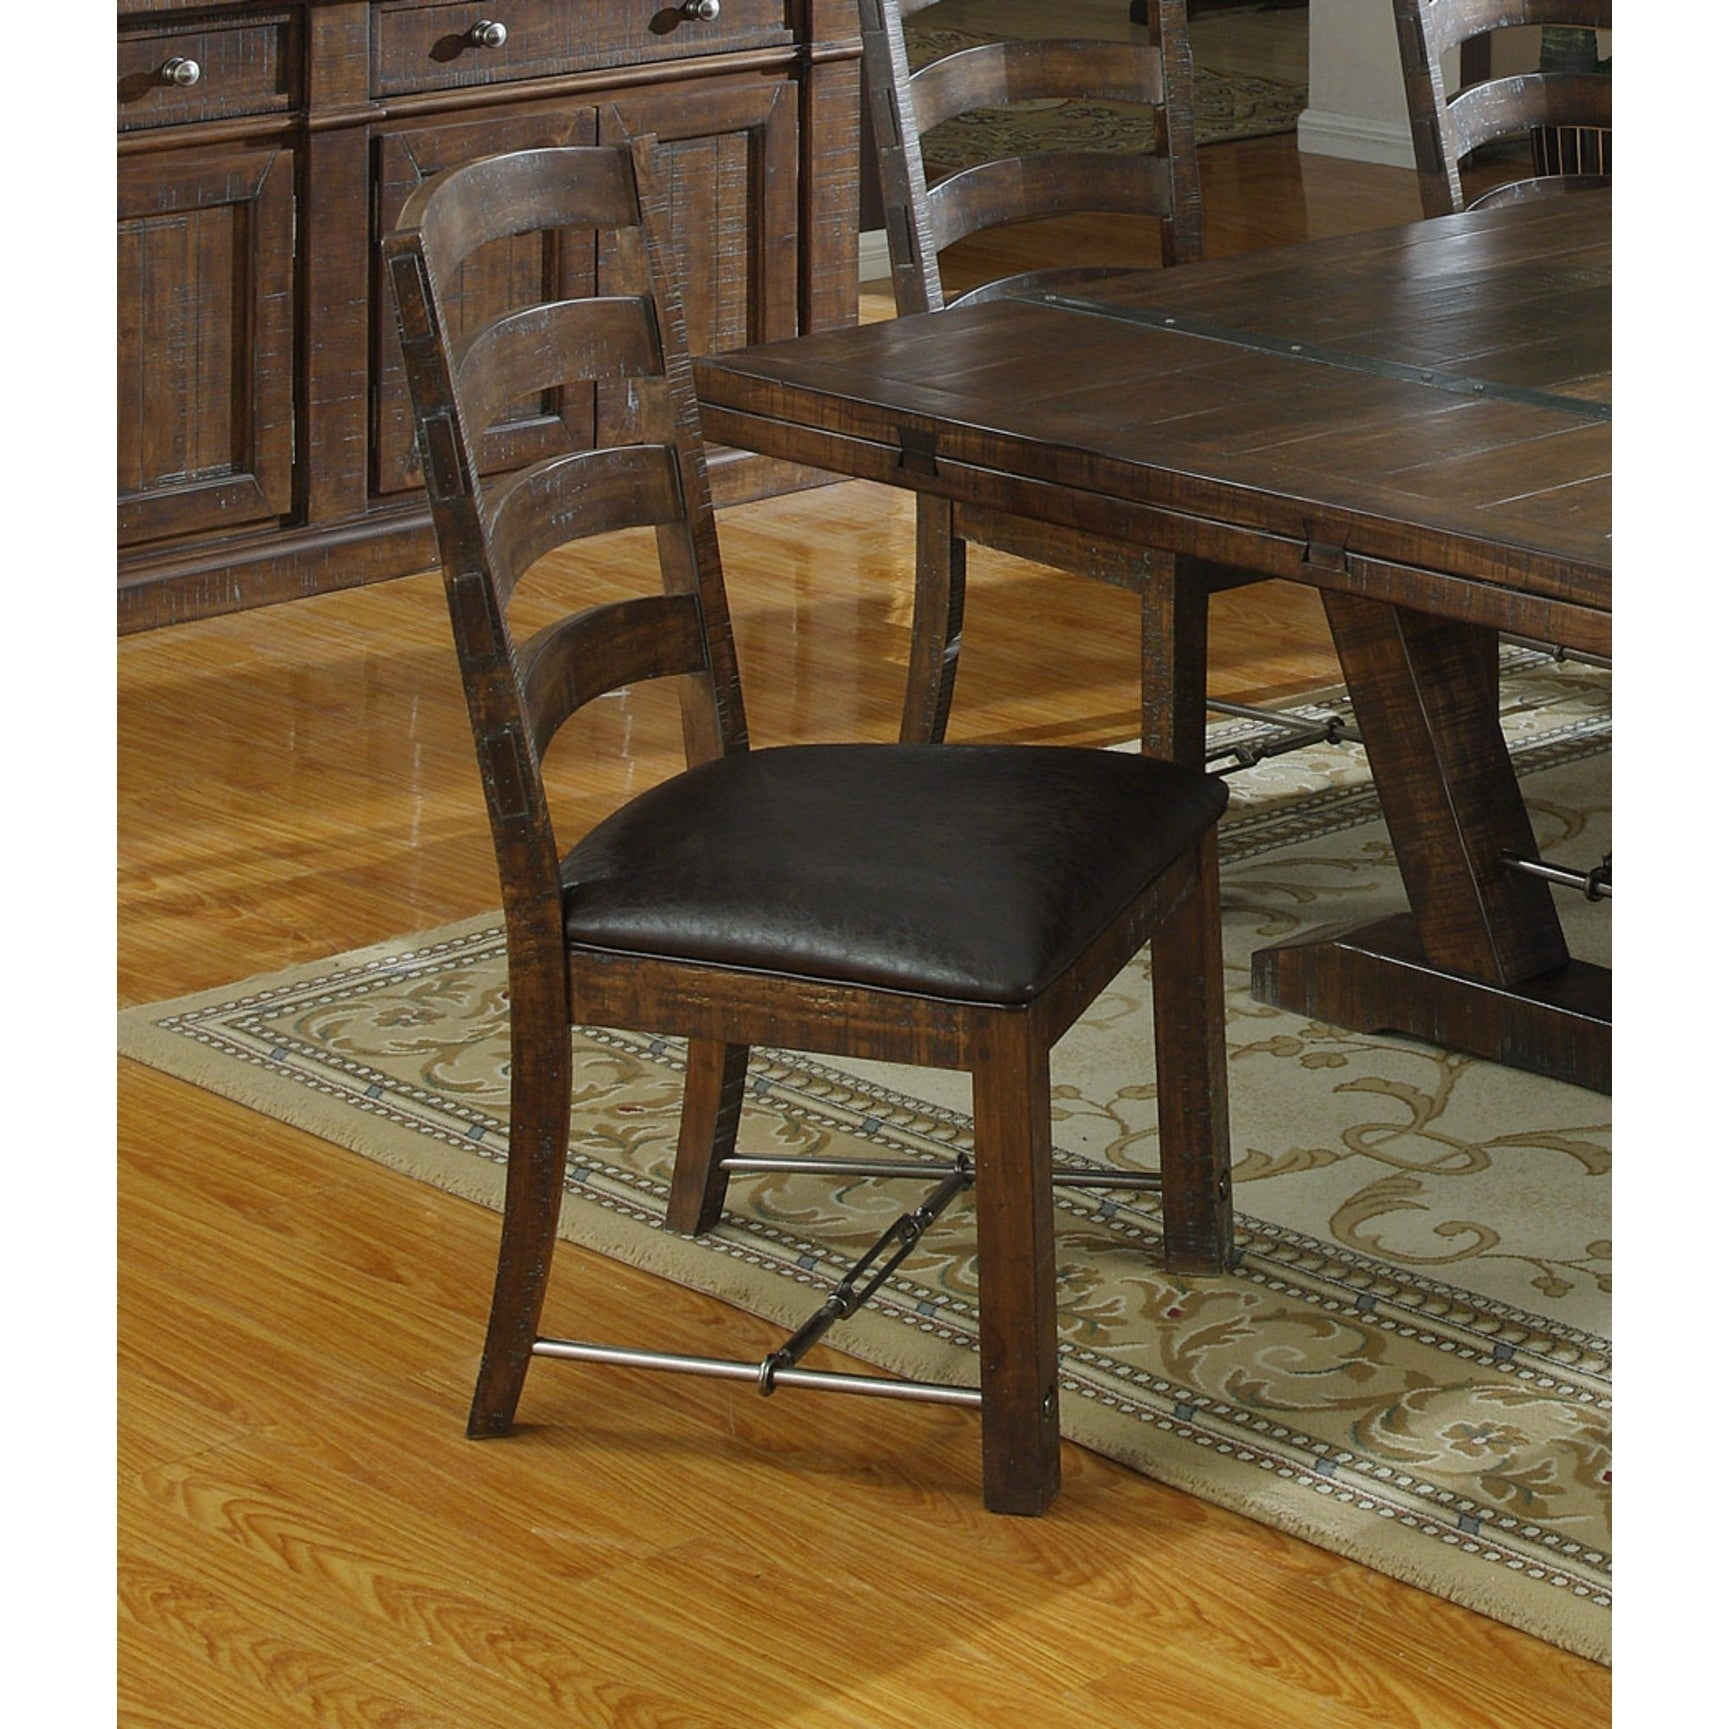 Emerald Home Castlegate Dining Chair With Bonded Leather Seat (Set Of 2) For Best And Newest Rustic Brown Lorraine Extending Dining Tables (View 21 of 25)